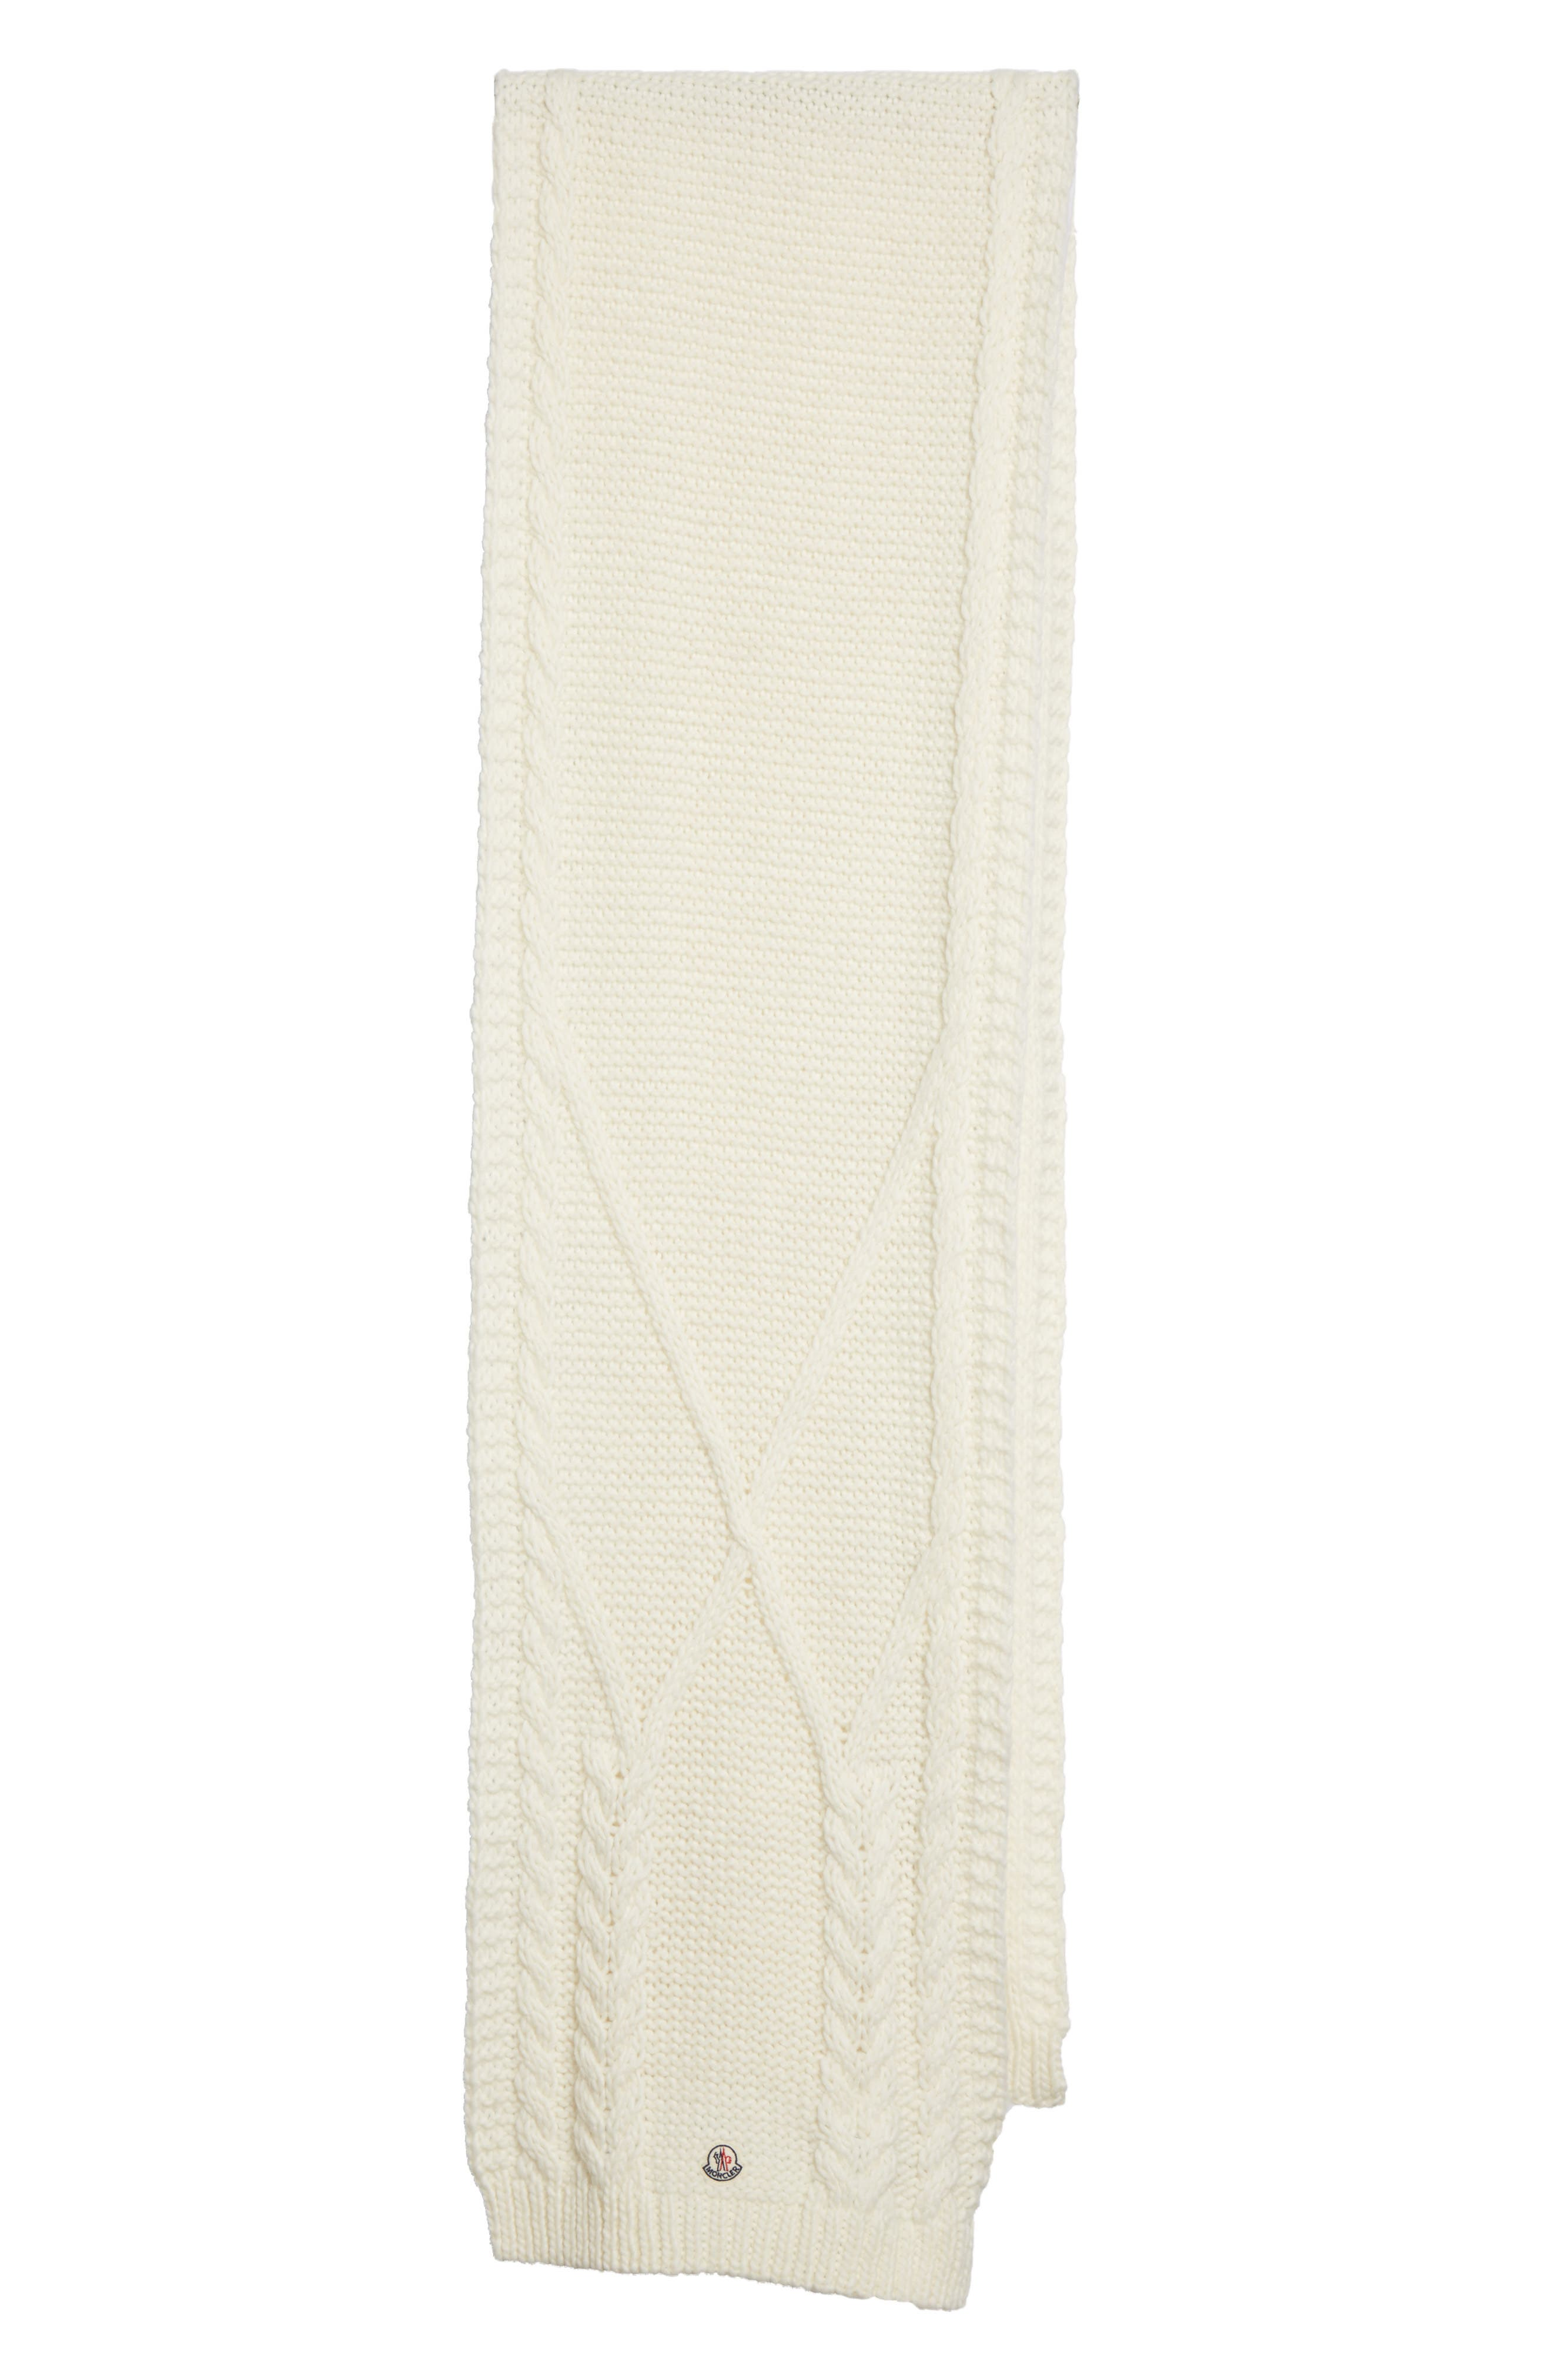 Scarpa Wool Blend Scarf,                             Main thumbnail 1, color,                             Ivory